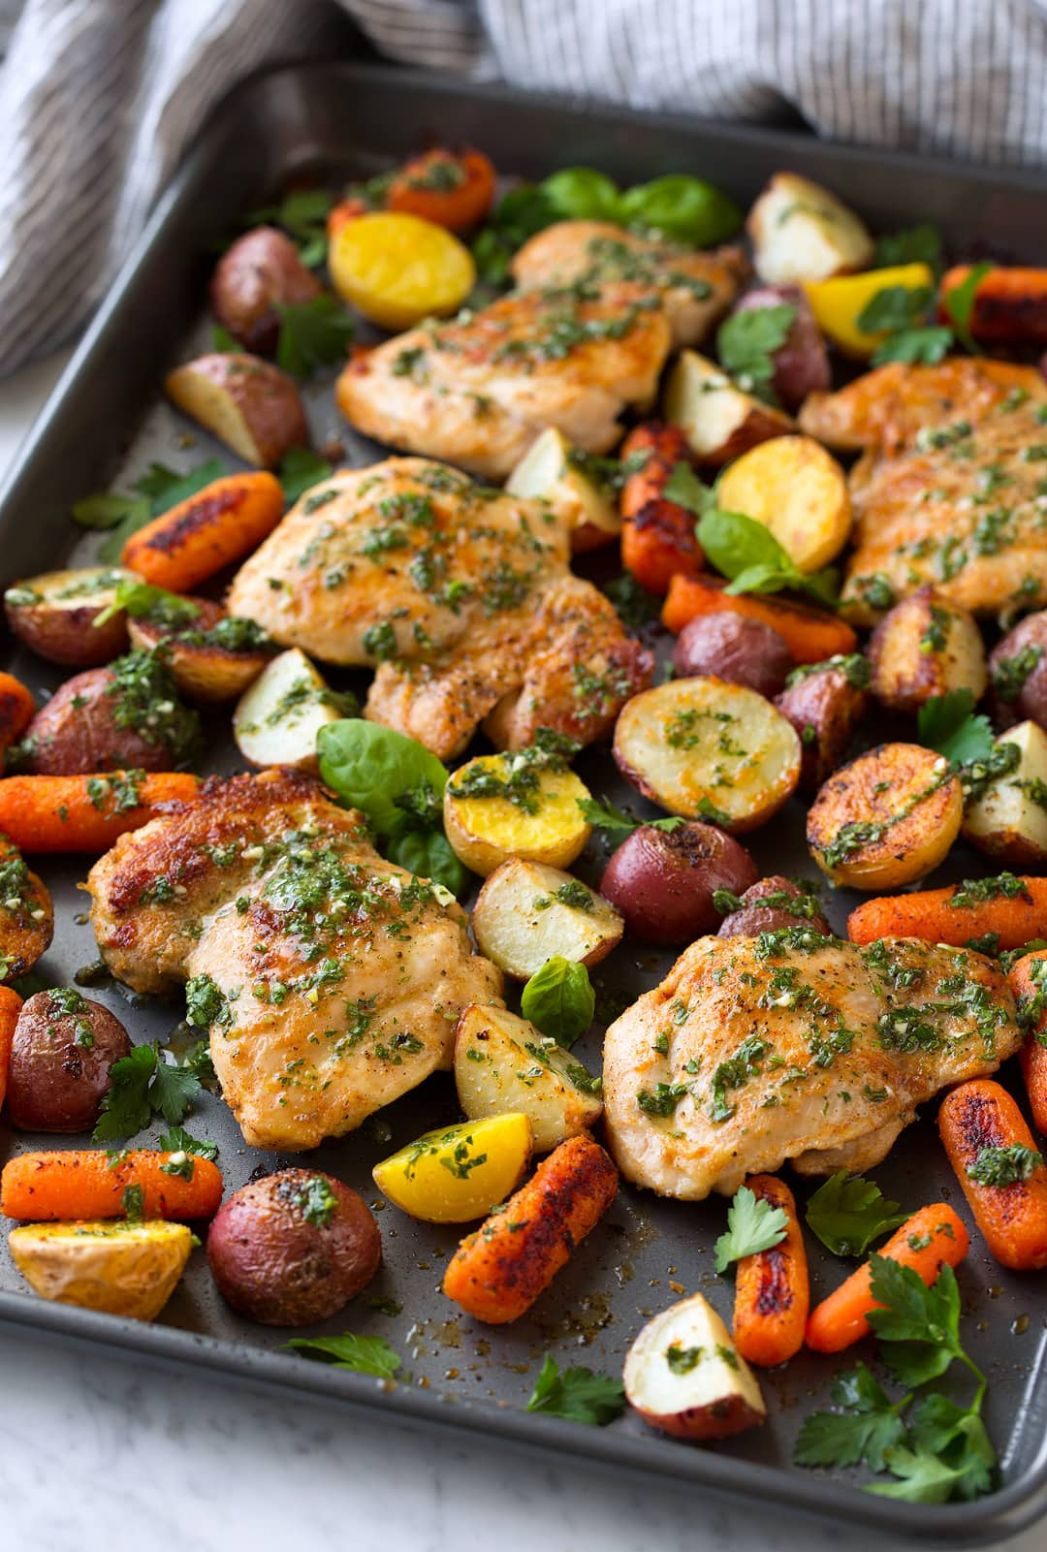 Roasted Chicken and Veggies with Garlic Herb Vinaigrette - Cooking ..